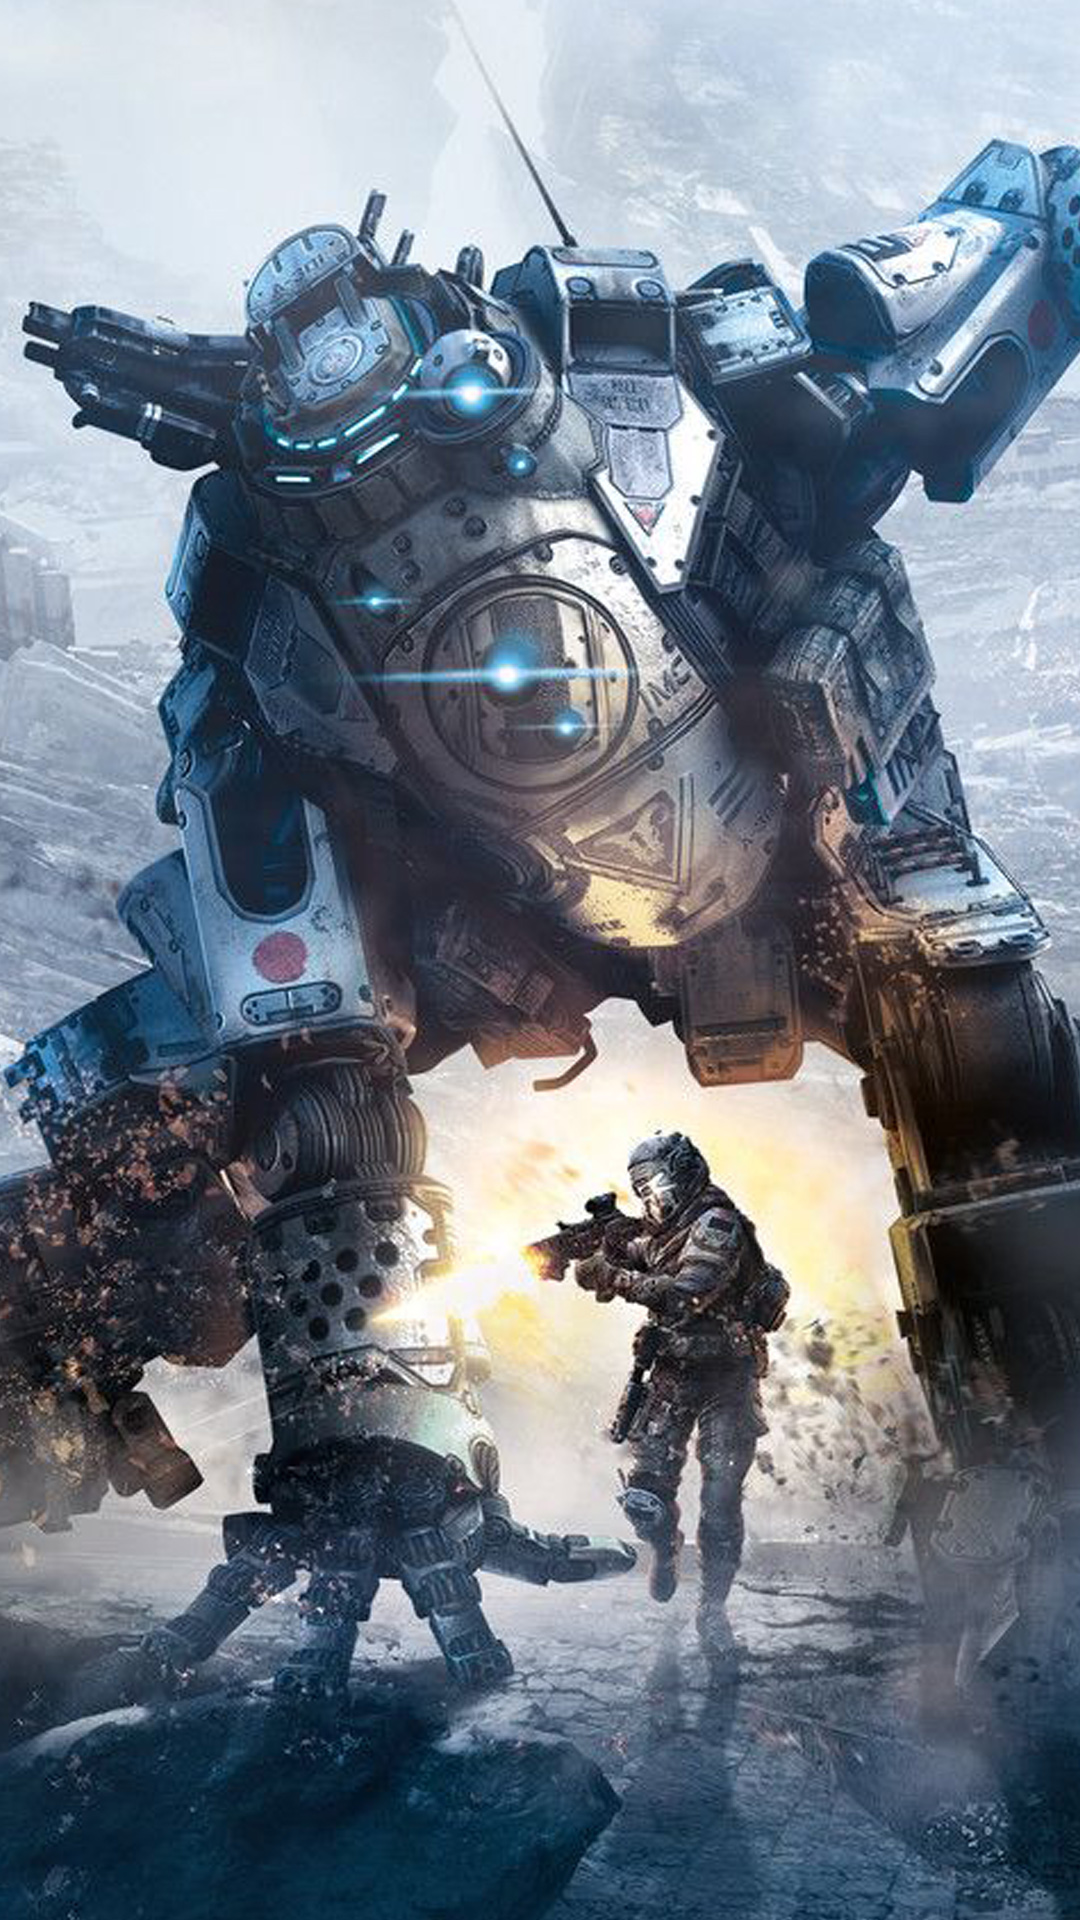 Download Free 3d Live Wallpaper For Windows Xp Download Titanfall Iphone Wallpaper Gallery